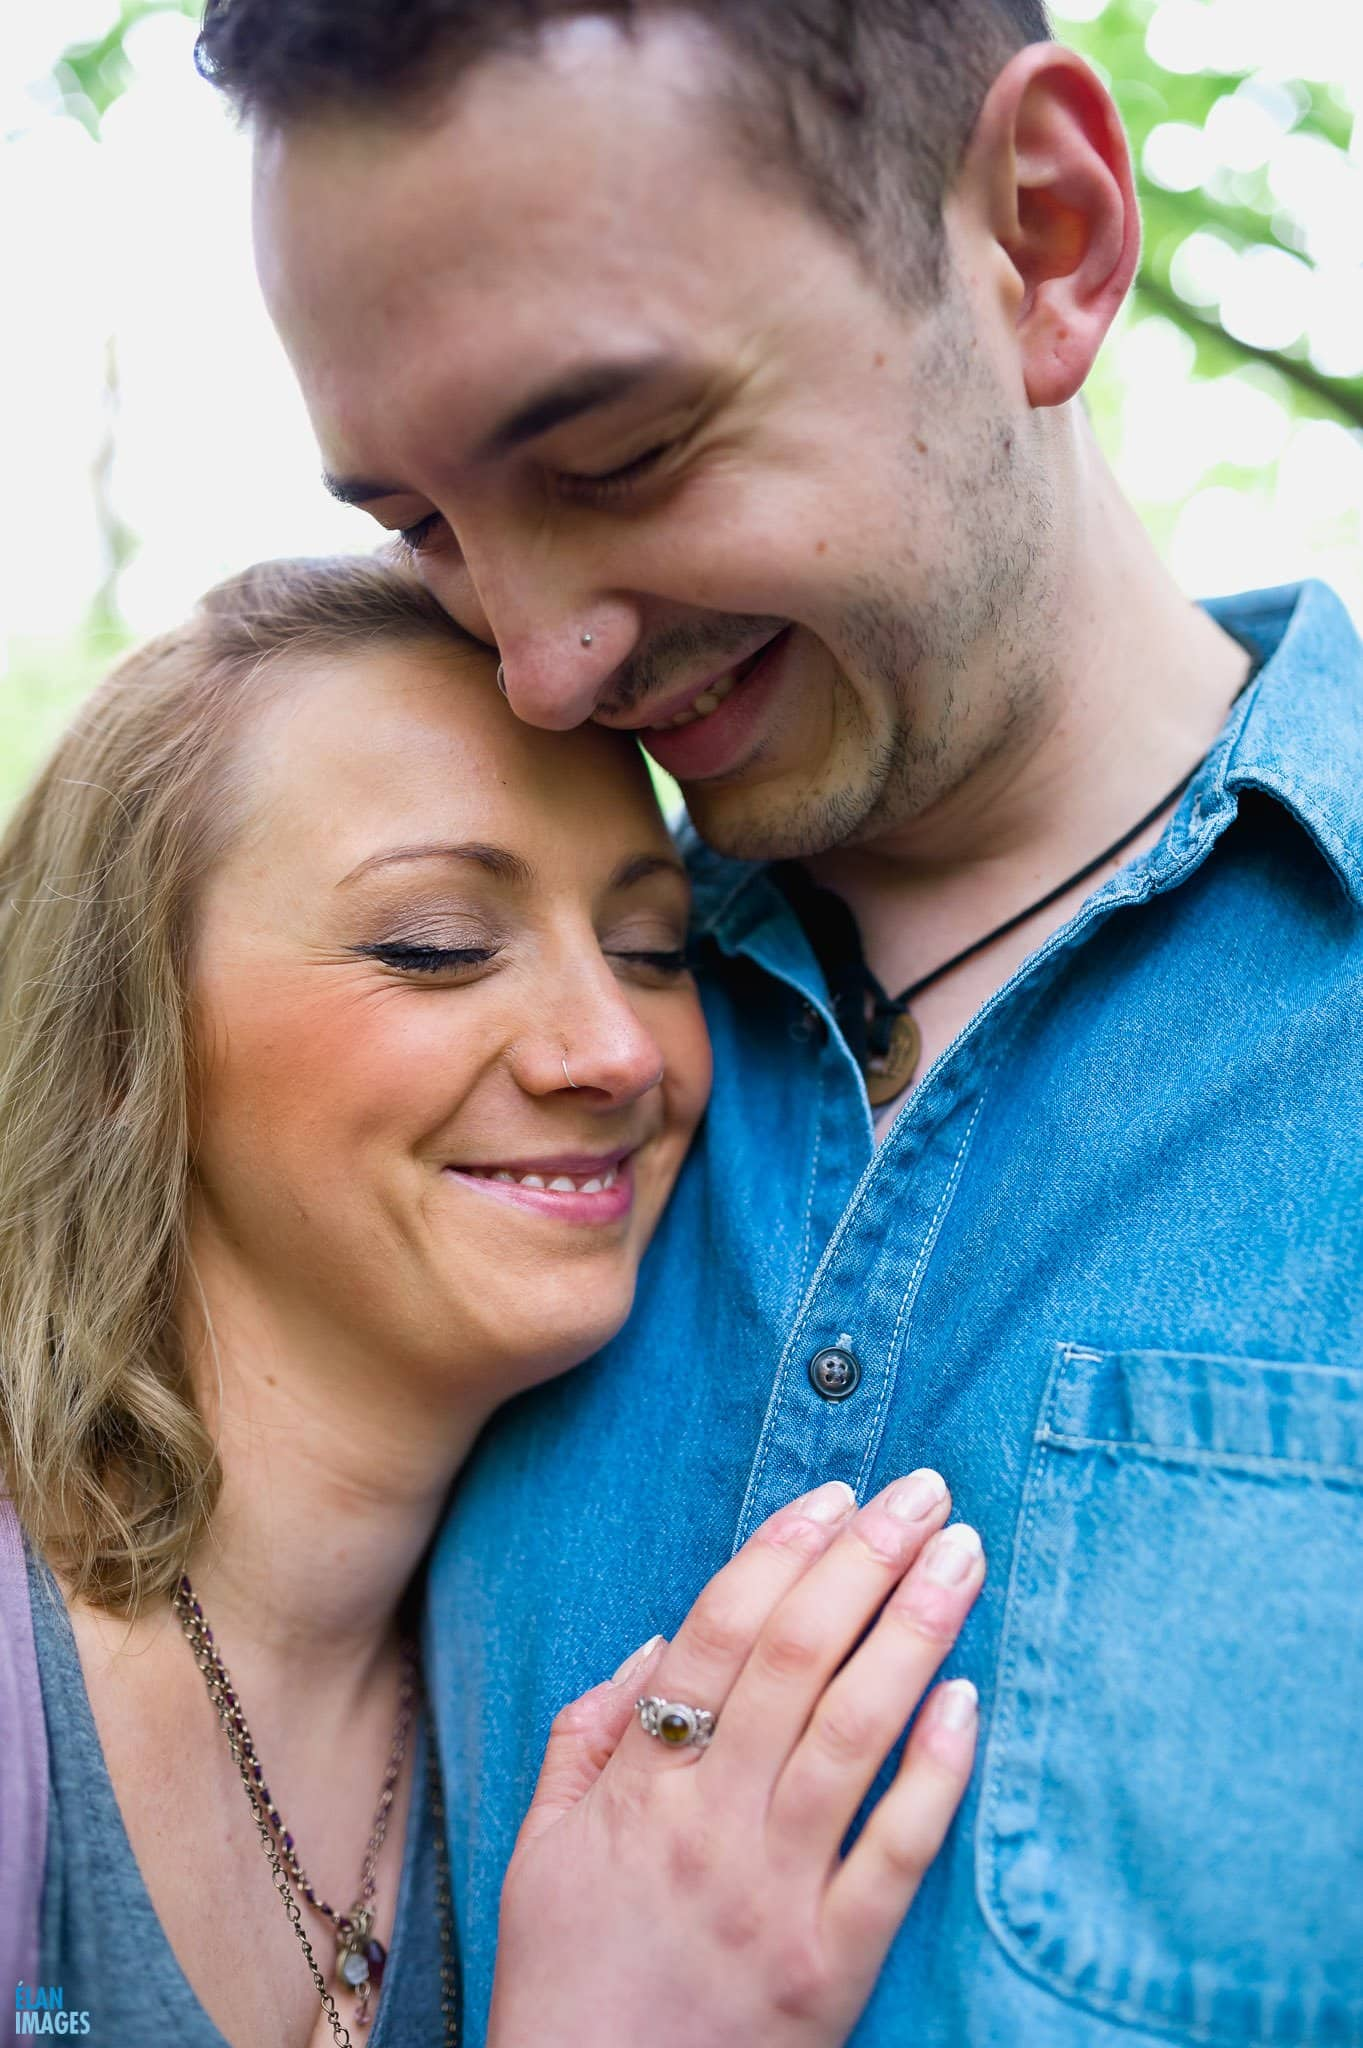 Engagement Photo Shoot in the Bluebell Woods near Bristol 35